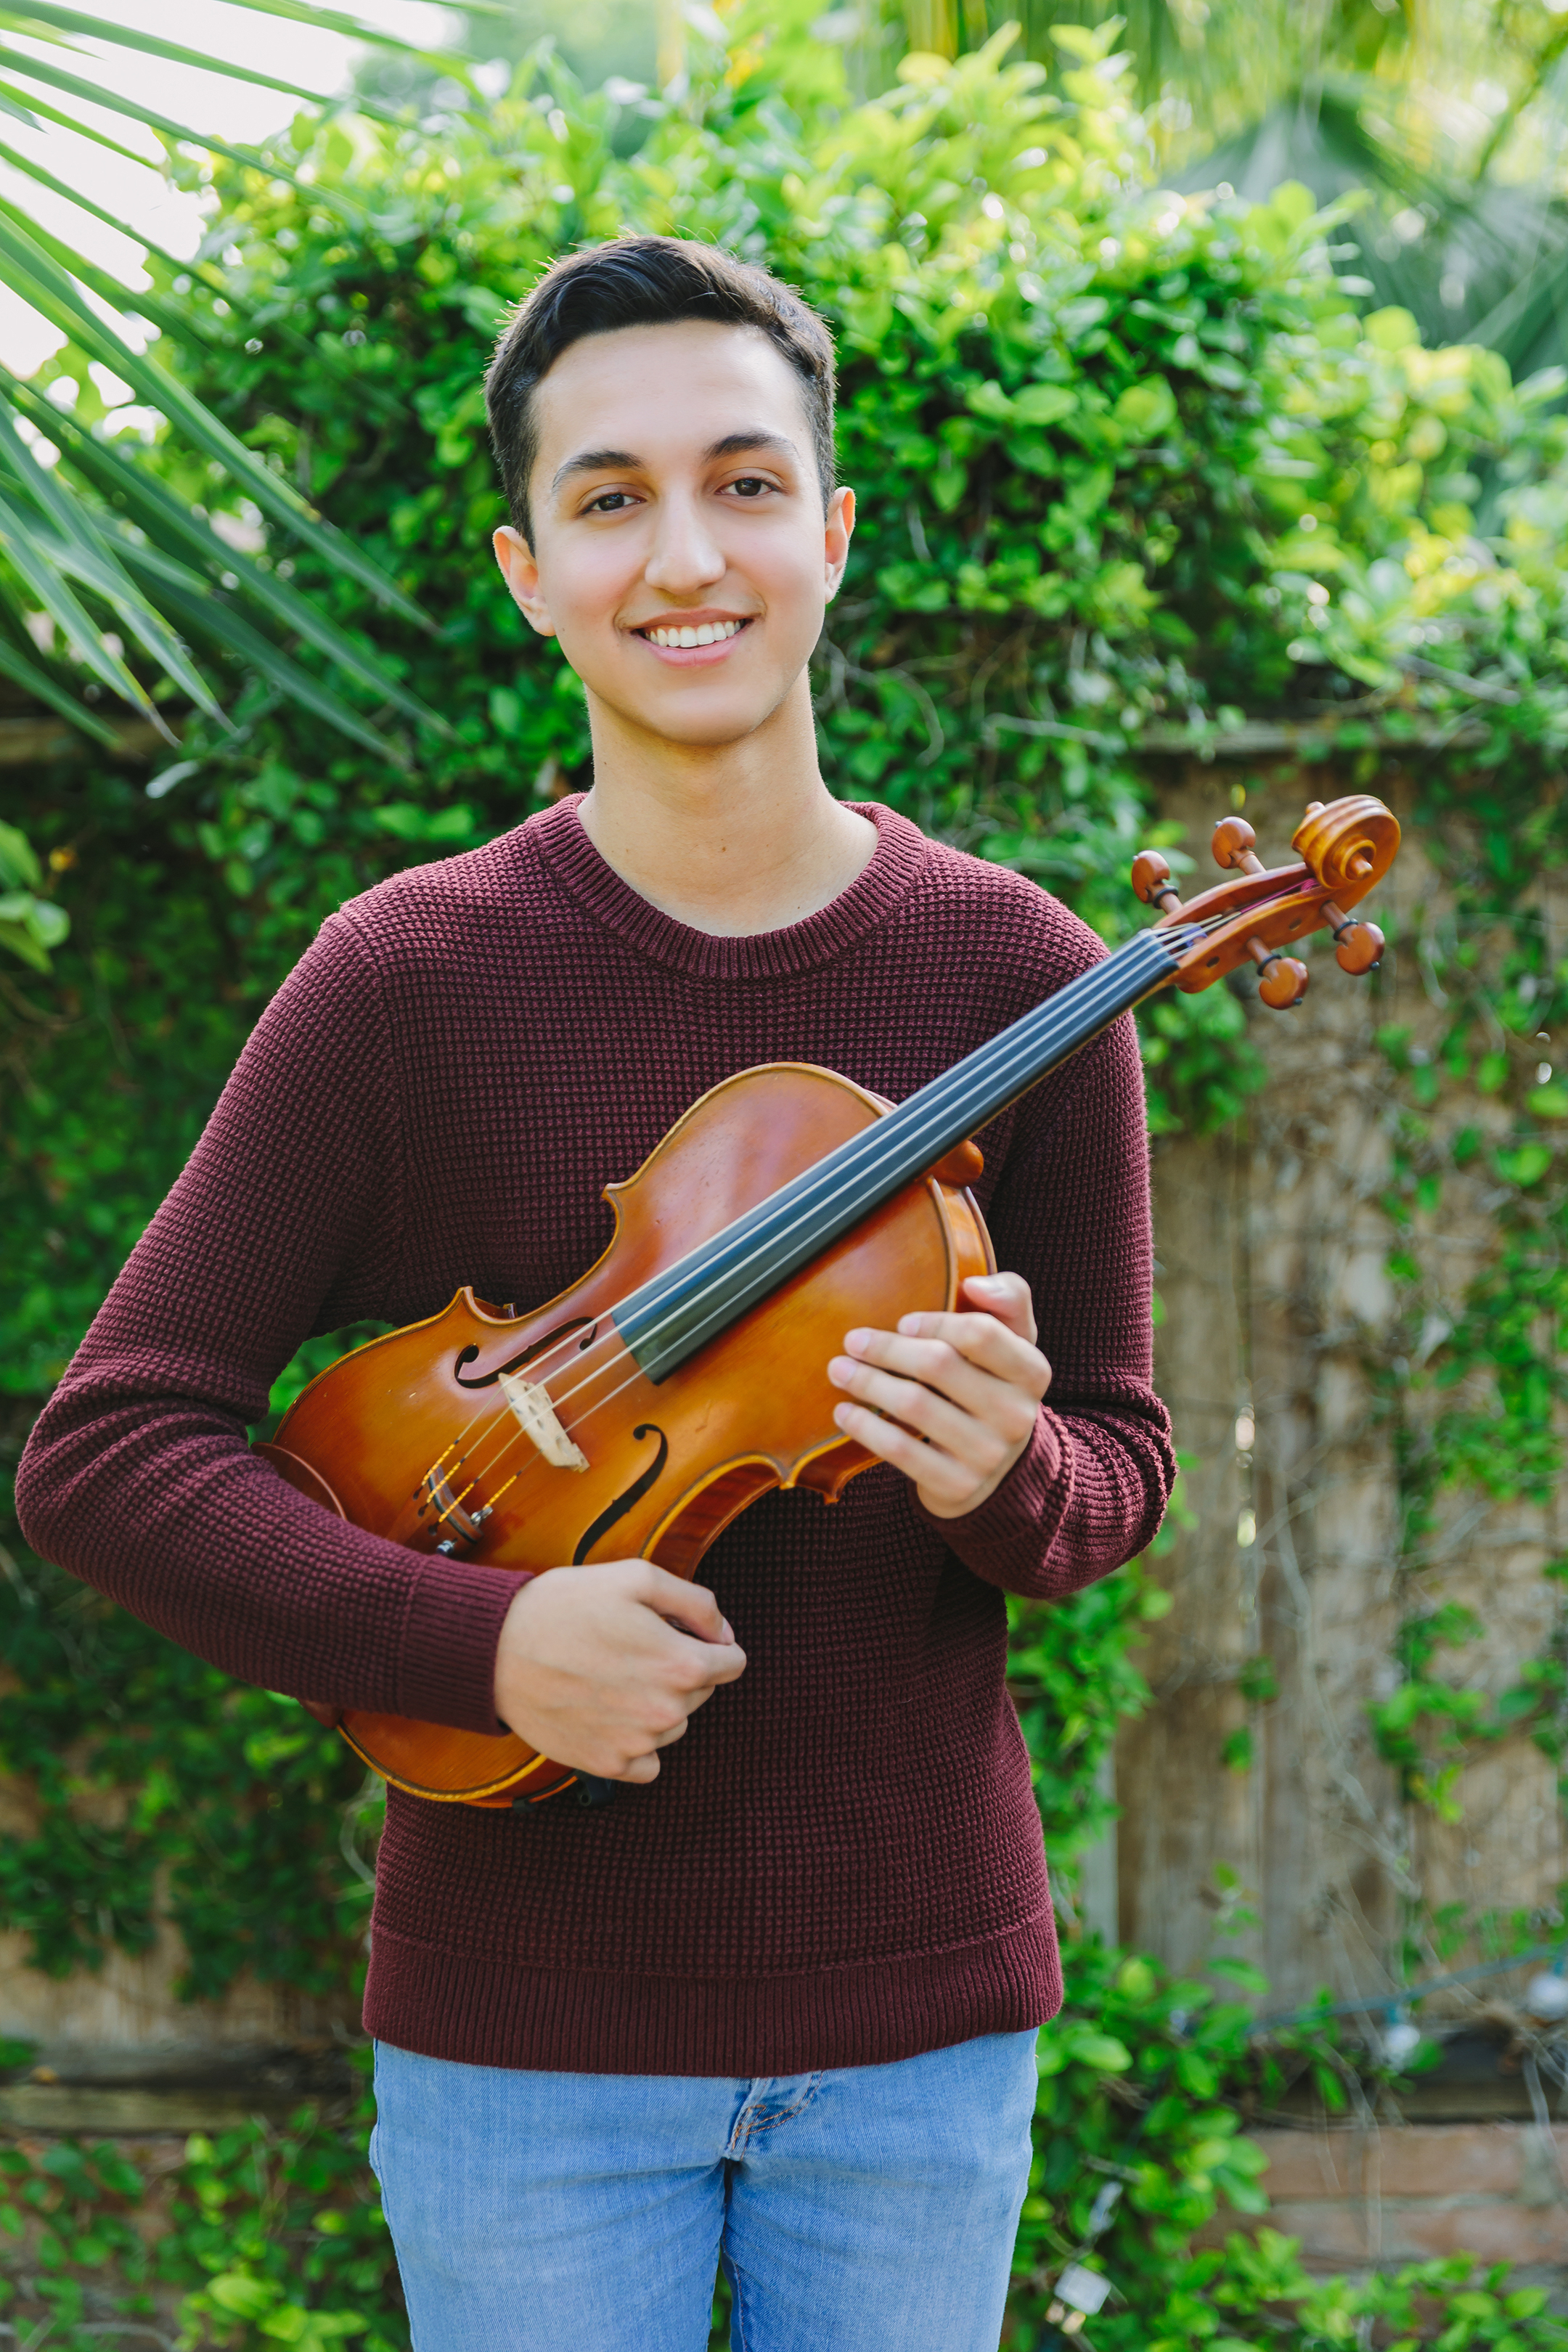 Viola Voyage: Matthew Garcia takes talent across the globe